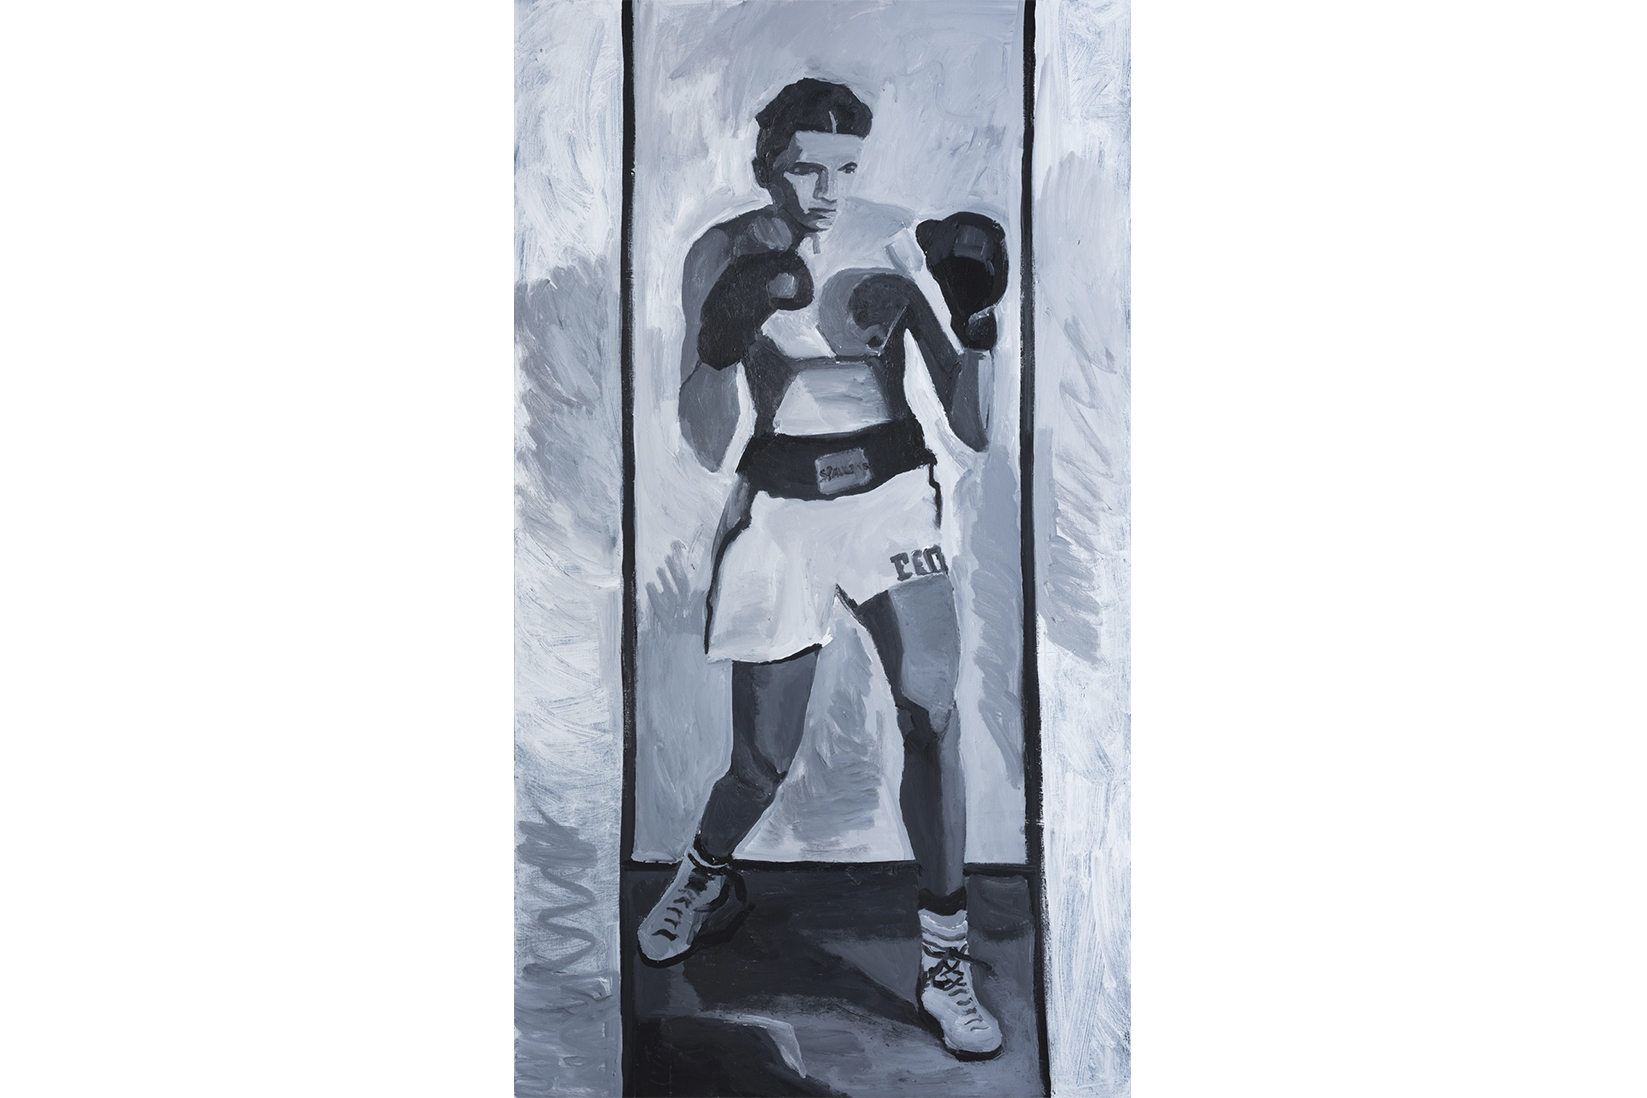 """HAE GOLDEN GLOVES 1939"" BY MEGAN EUKER"